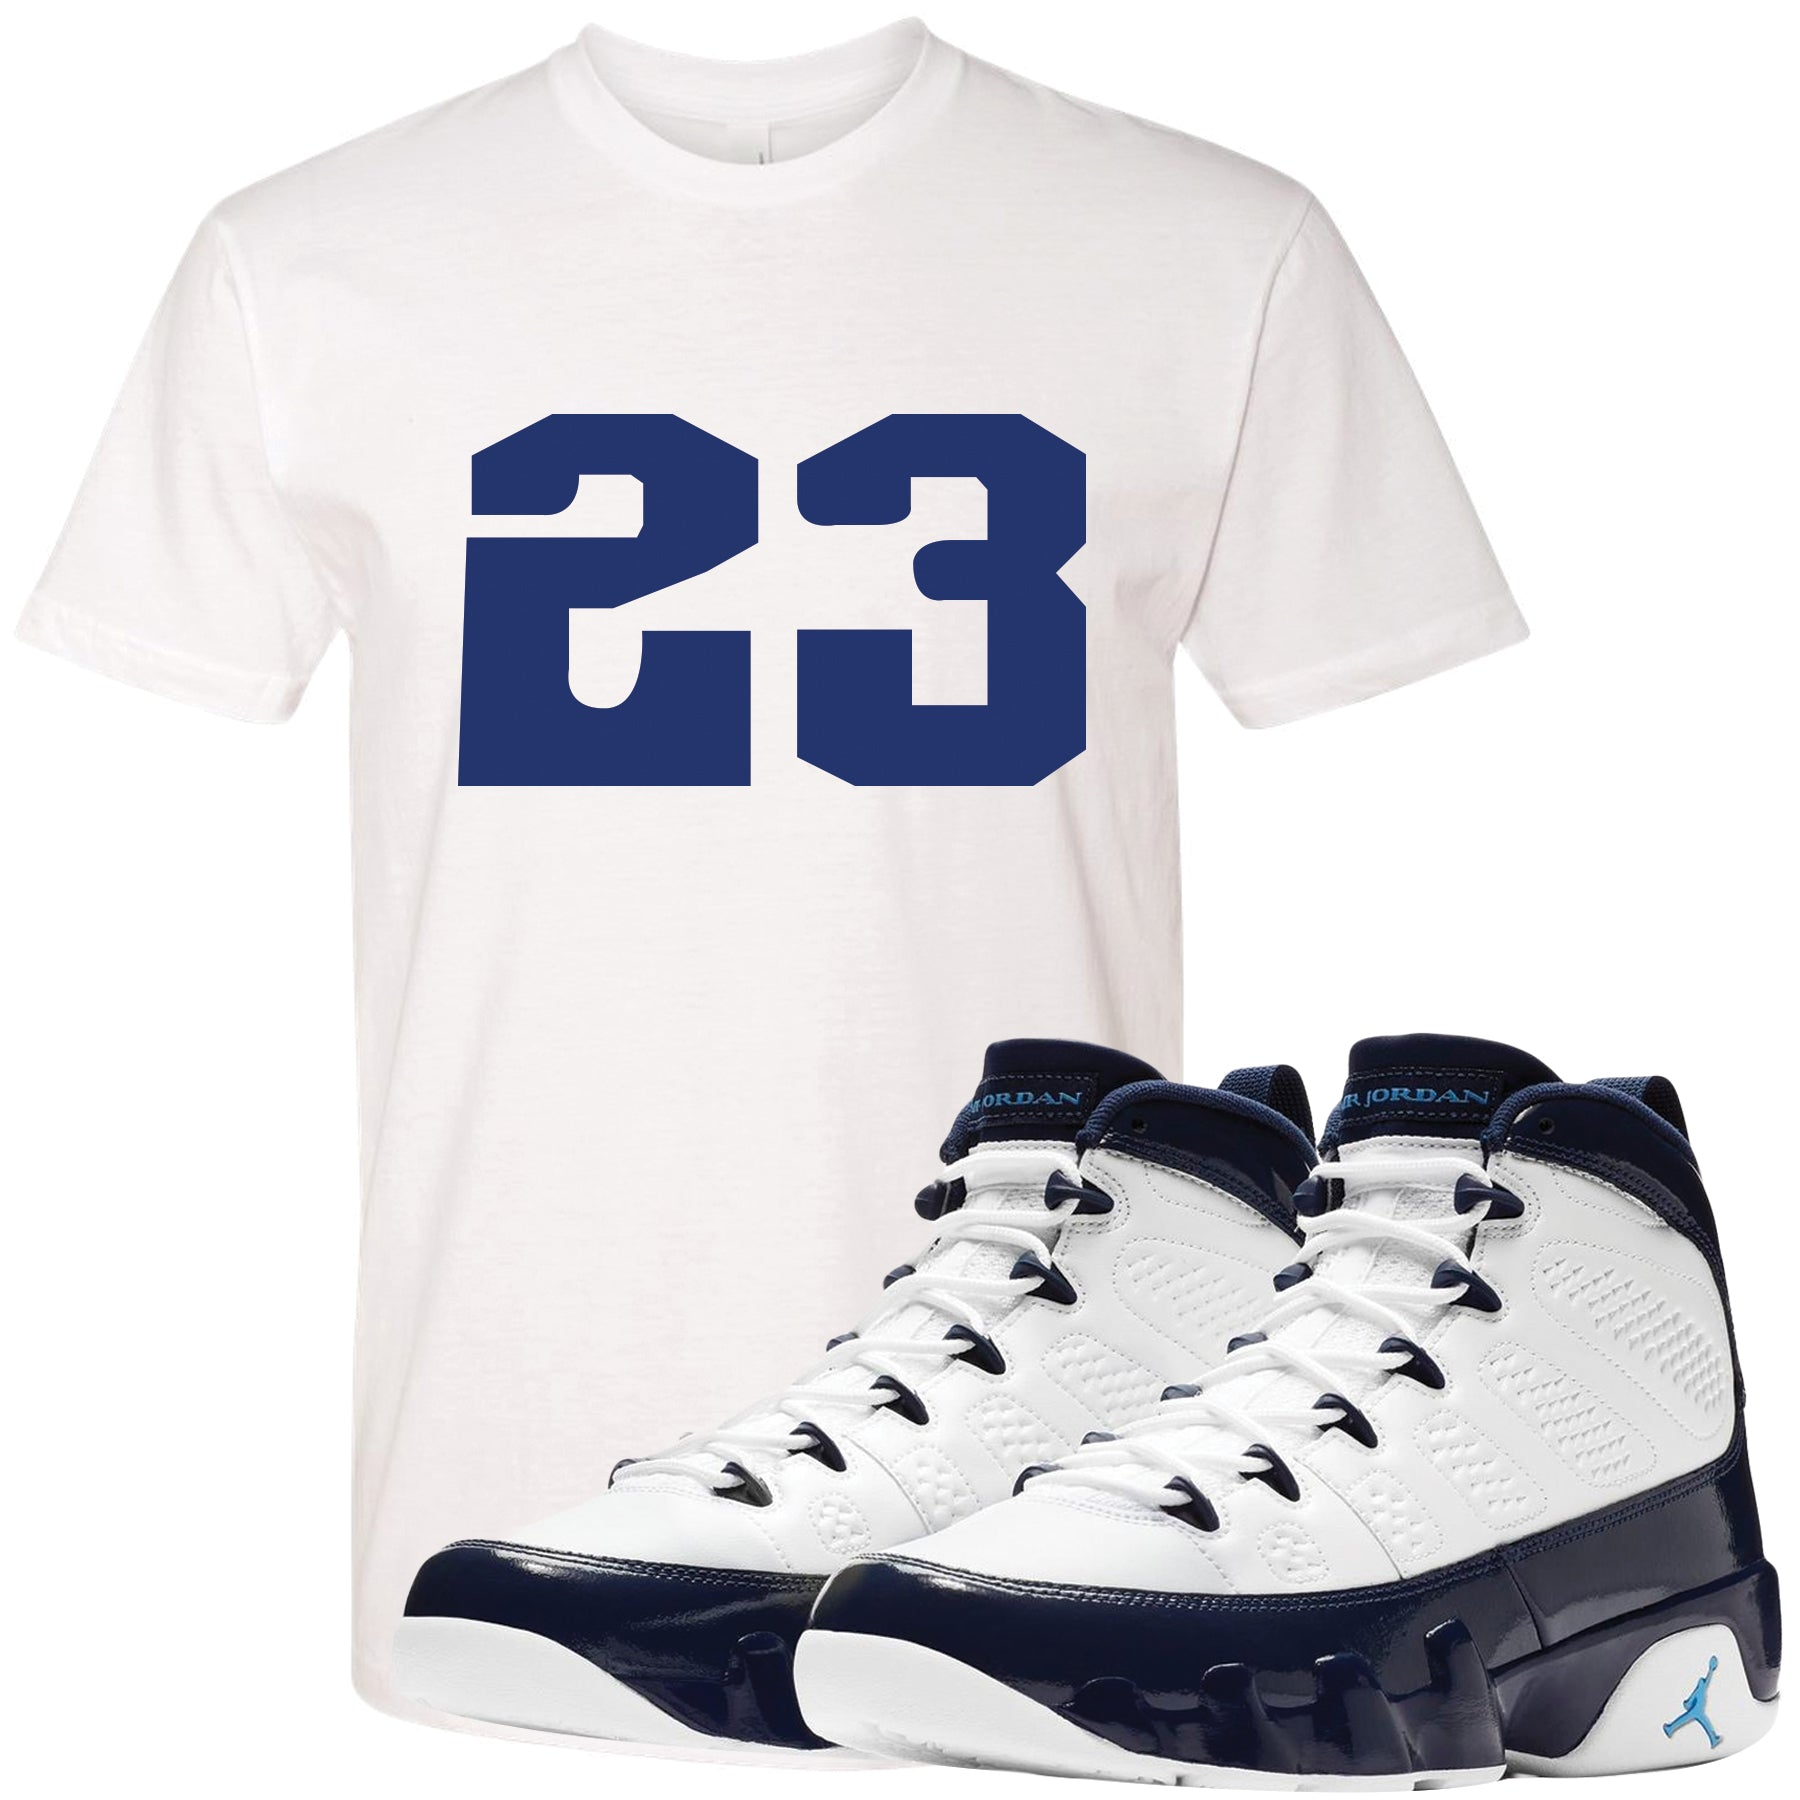 48e96de34b6a Match your pair of Jordan 9 UNC All Star Blue Pearl sneakers with this sneaker  matching